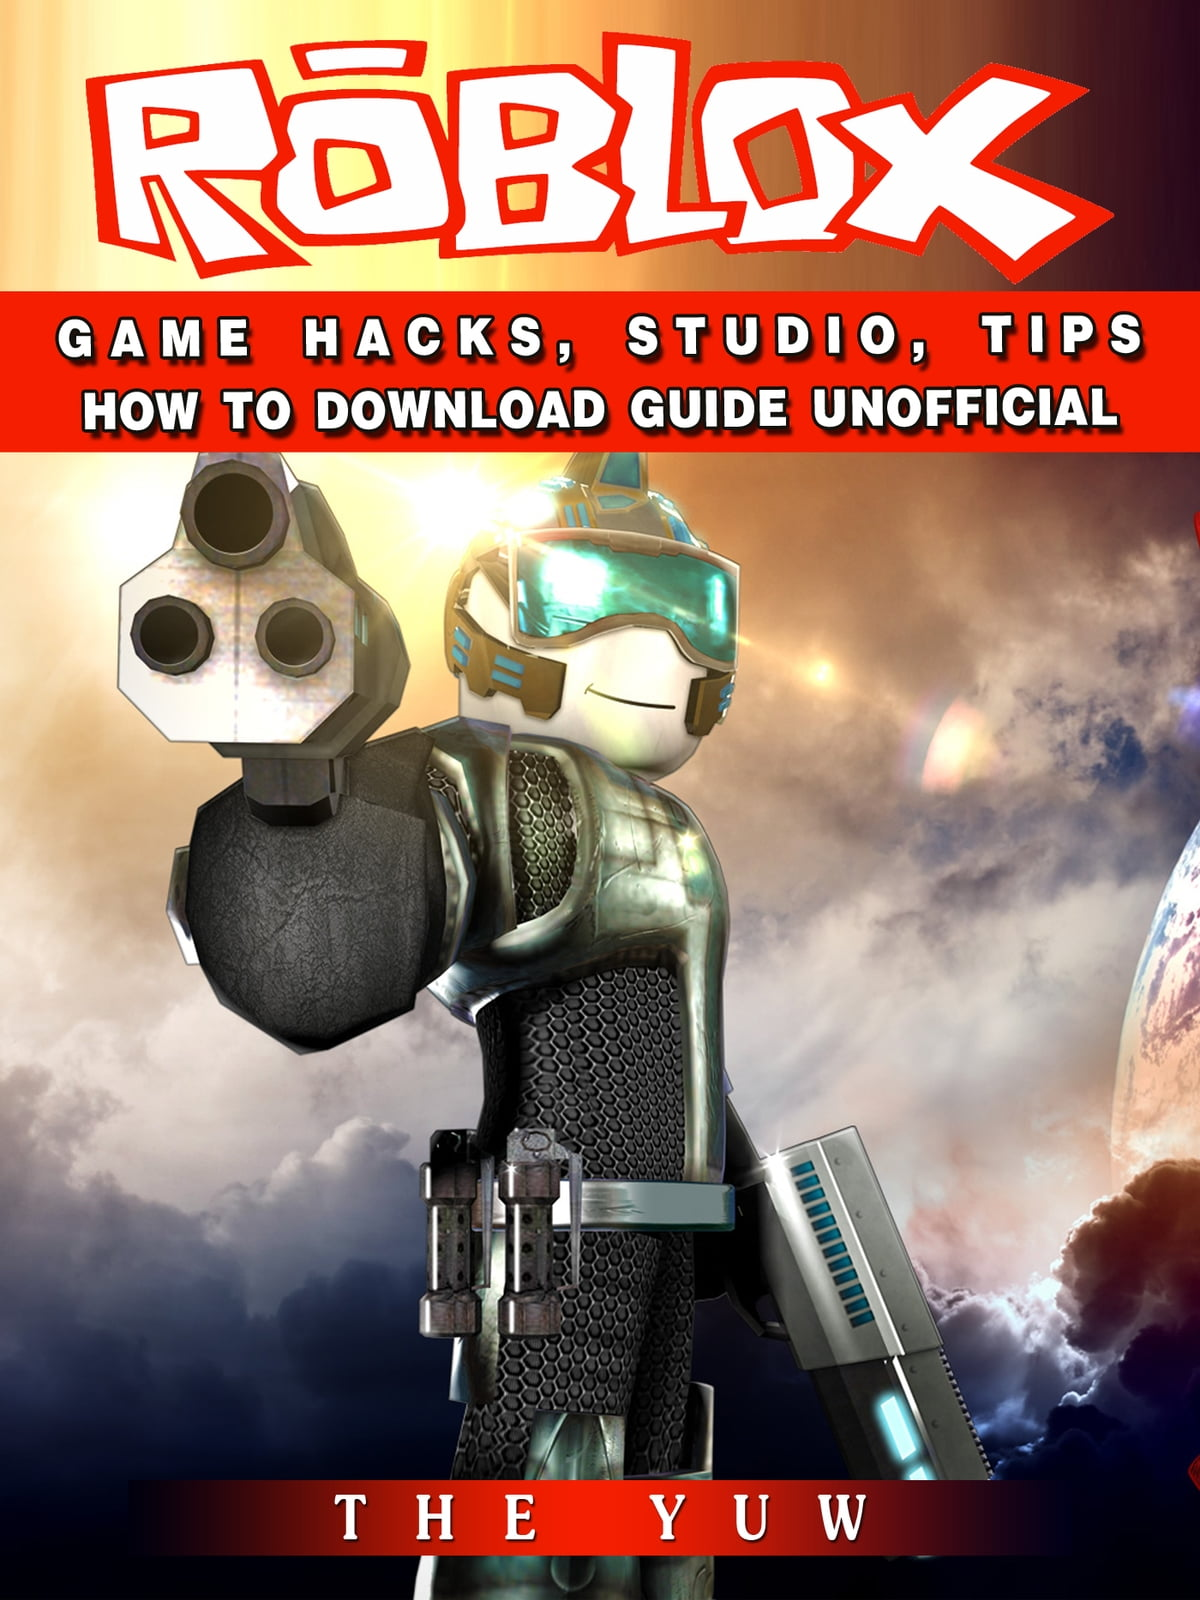 Roblox Game Hacks, Studio, Tips How to Download Guide Unofficial ebook by  The Yuw - Rakuten Kobo